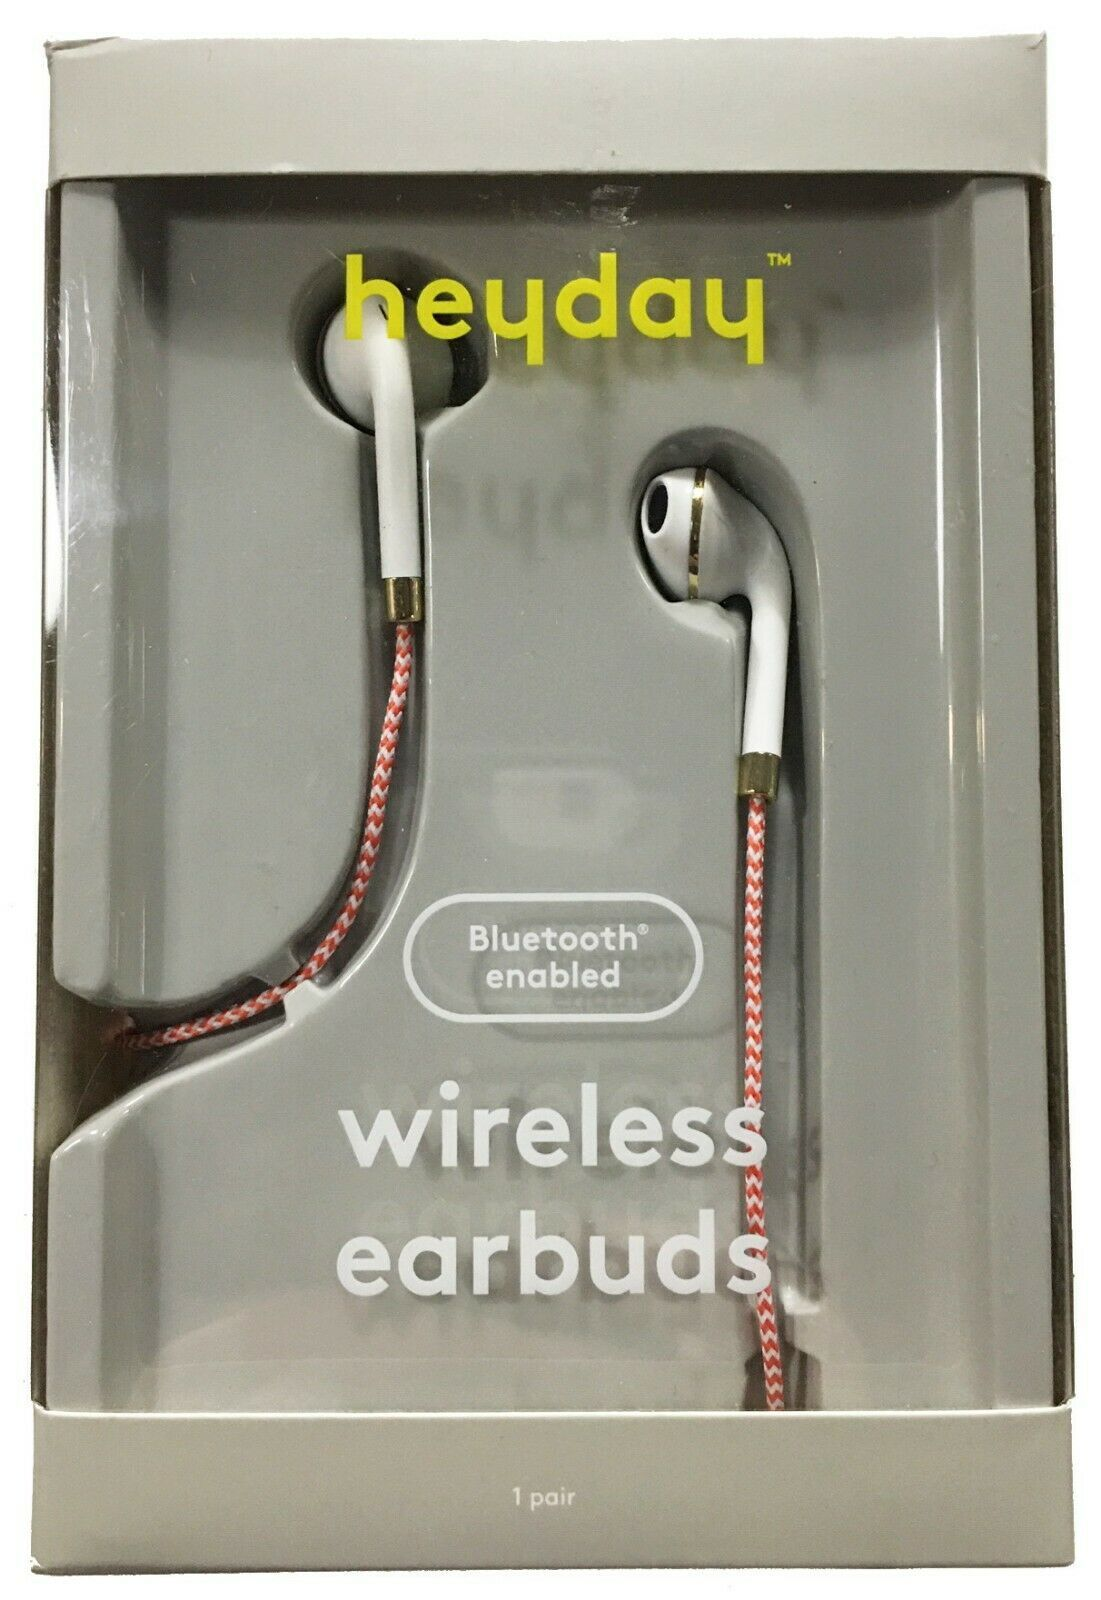 heyday Wireless Coral White Braided Bluetooth Enabled Earbuds Phone Headset NEW